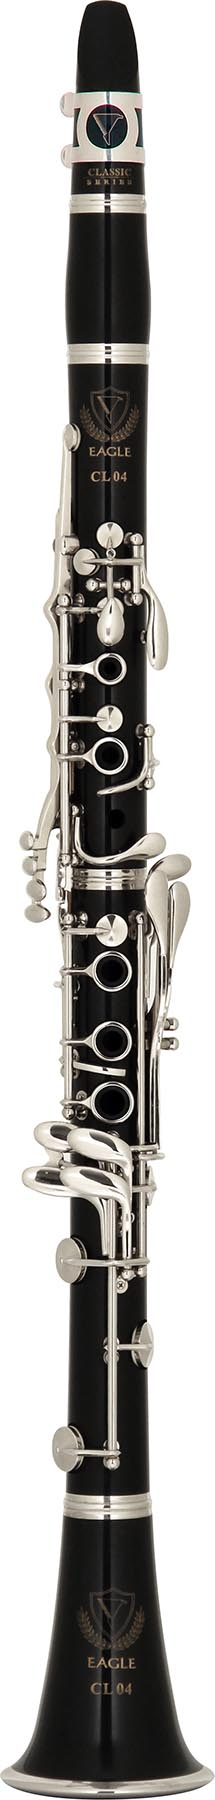 cl04 clarinete eagle cl04 vertical